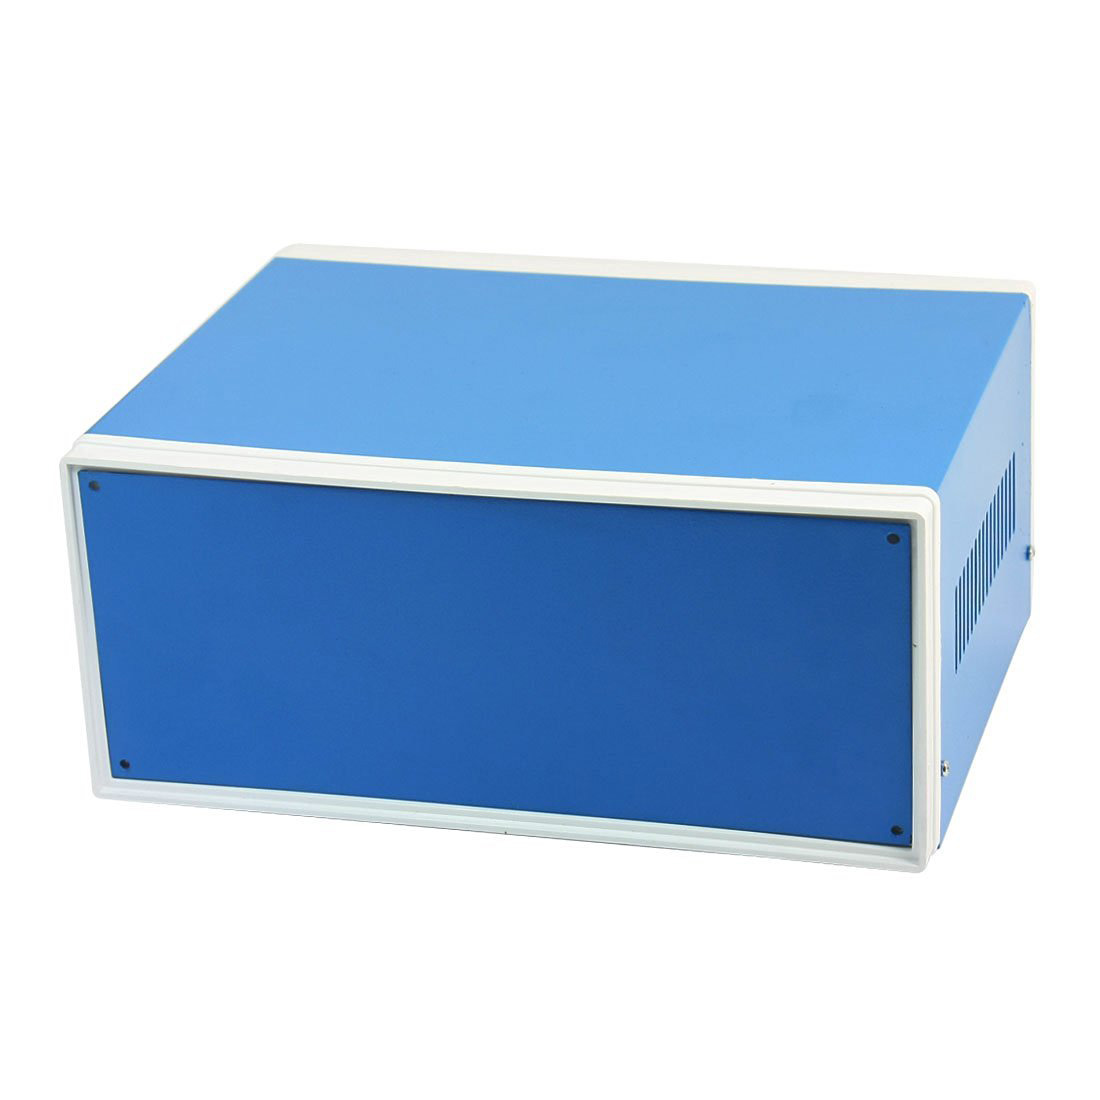 9 8 quot x 7 5 quot x 4 3 quot Blue Metal Enclosure Project Case DIY Junction Box in Terminals from Home Improvement